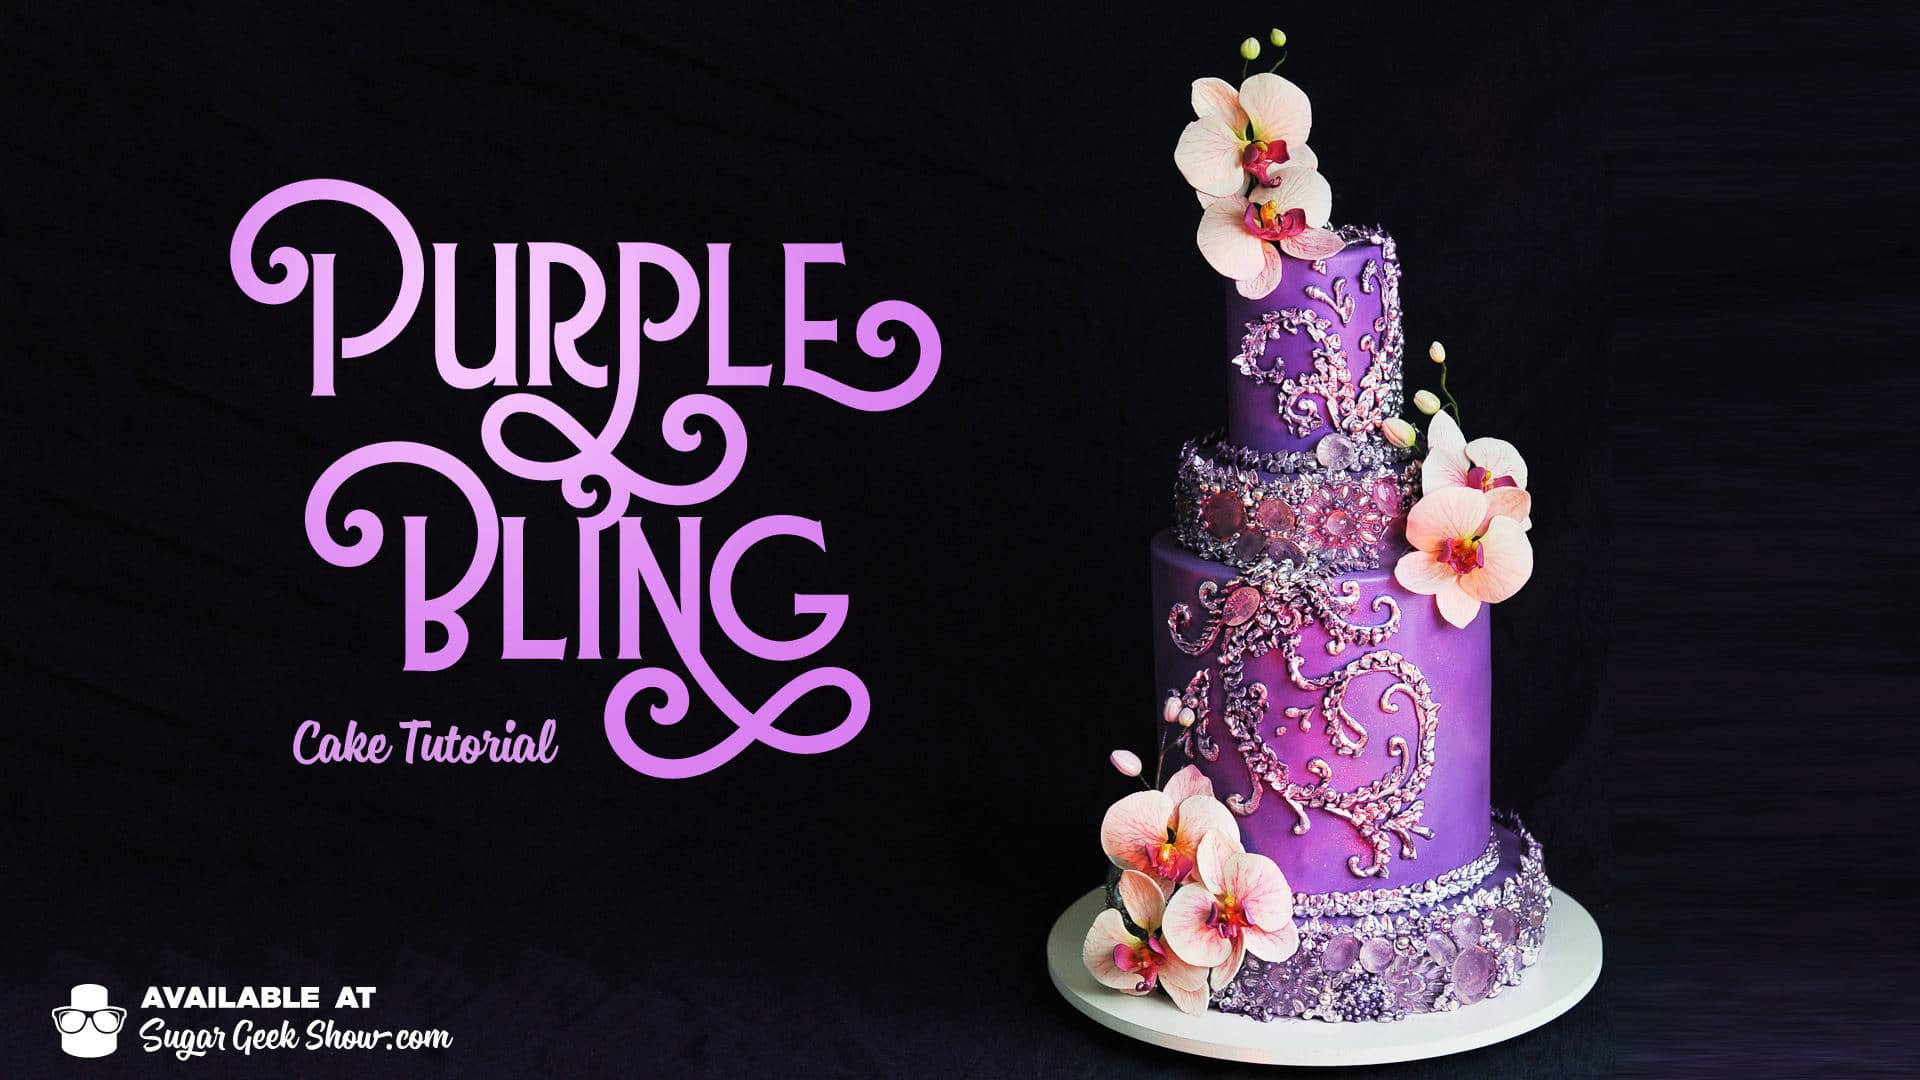 This is a re-make of one of my very early cakes in my career. Since then, it has been pinned, shared and re-posted thousands of times. I have always had a thing for shiny edible bling on cakes and get many requests on how to re-create these edible jewels. So here it is! How to make the purple bling cake complete with edible jewels and silver piping and gorgeous, life-like gumpaste orchids! Click through to learn the step-by-step process on srcset=